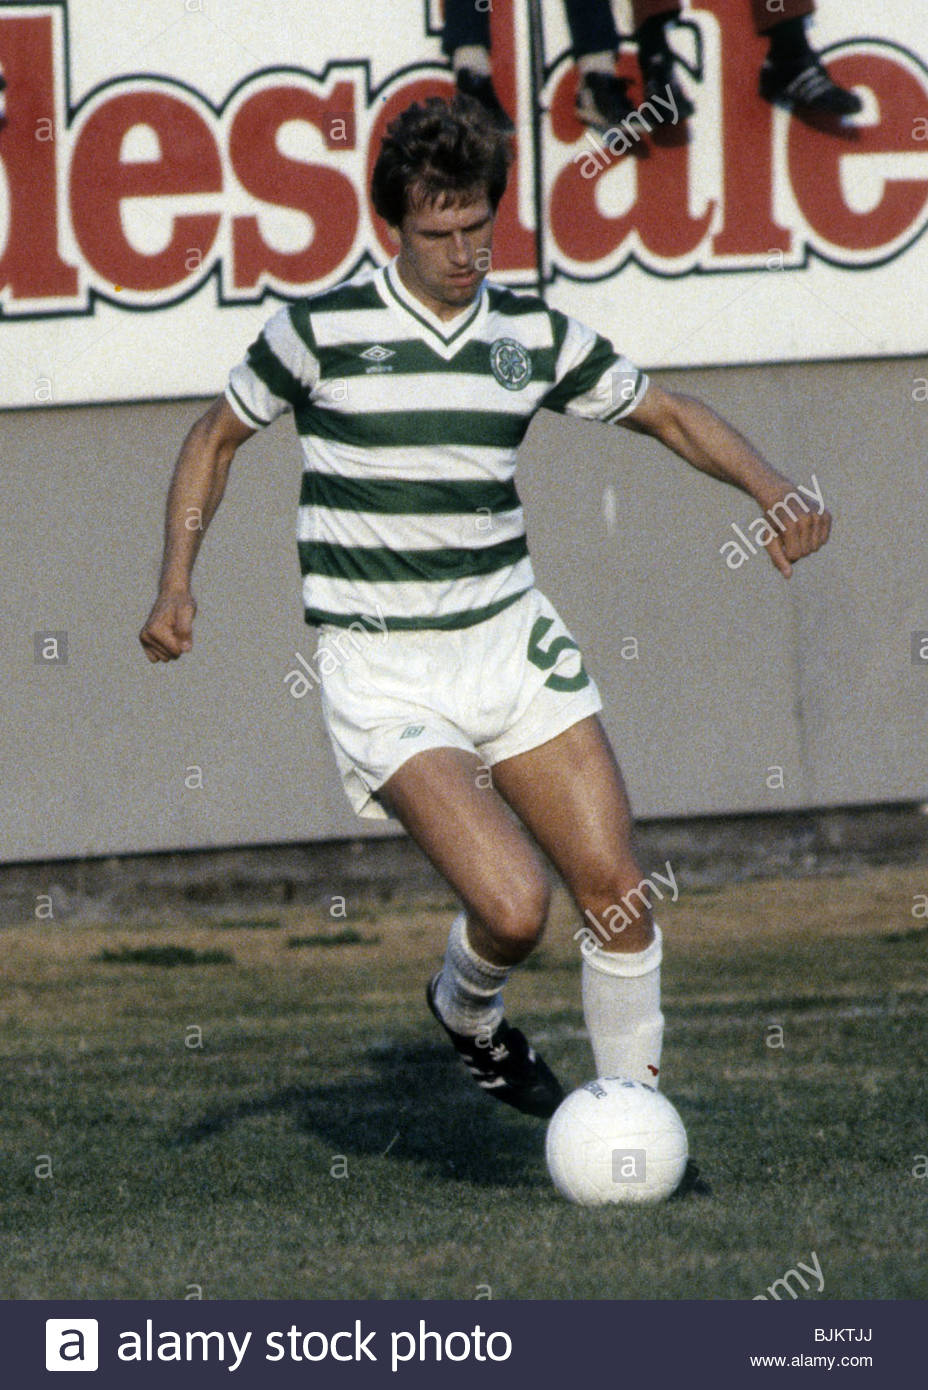 09/08/83 GLASGOW CUP PARTICK THISTLE v CELTIC (0-2) FIRHILL - GLASGOW Tom McAdam in action for Celtic. - Stock Image